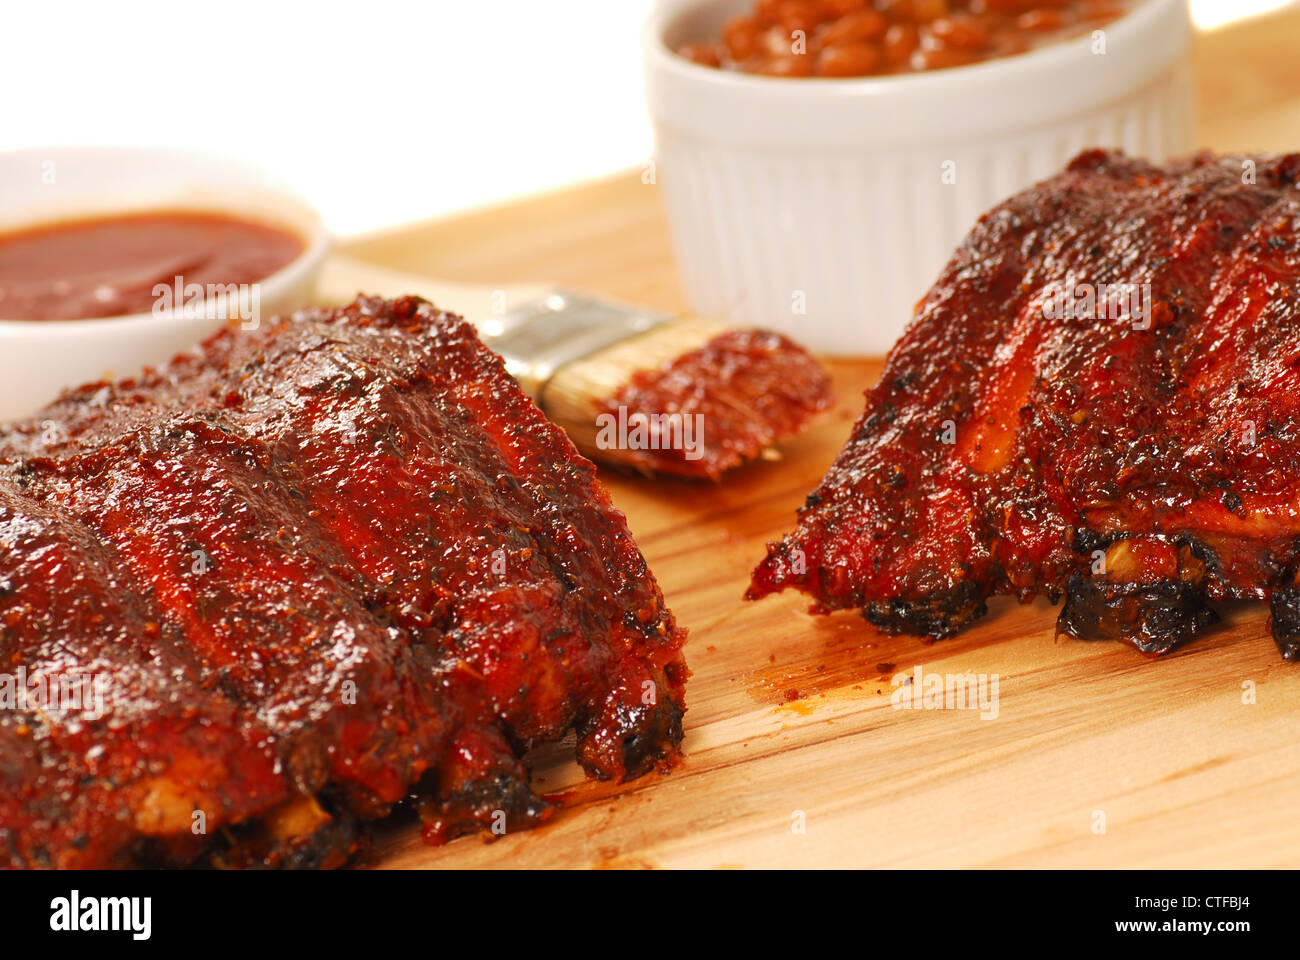 Slab of BBQ spare ribs with beans and dipping sauce - Stock Image